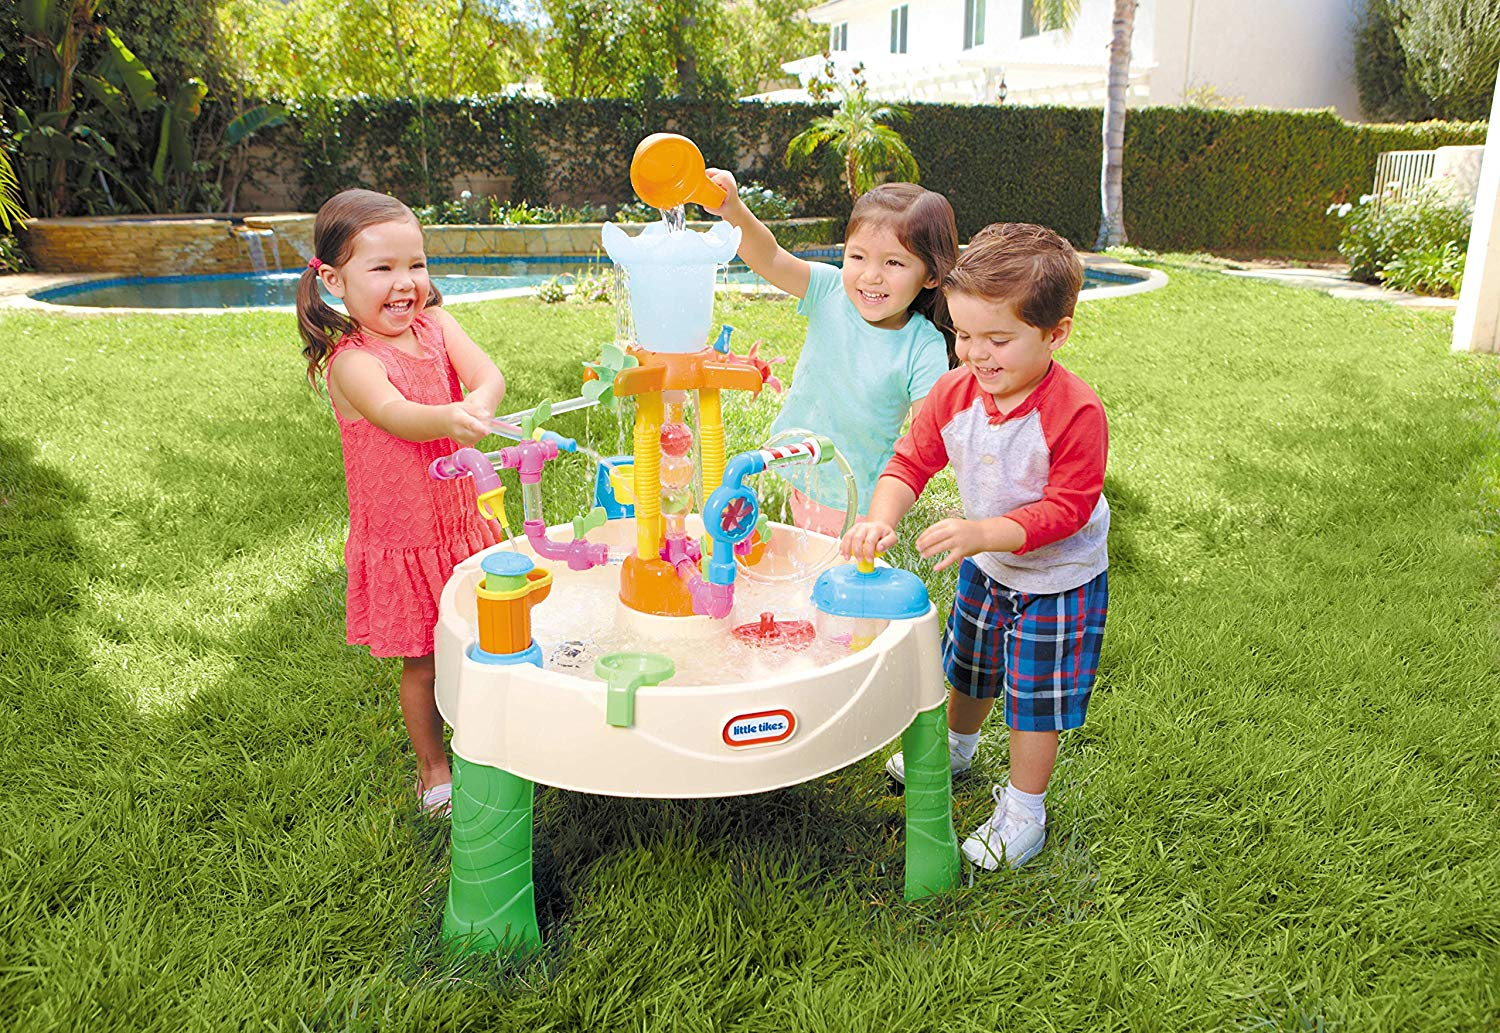 Best Water Tables for Kids in 2020 | Reviews & Buying Guide